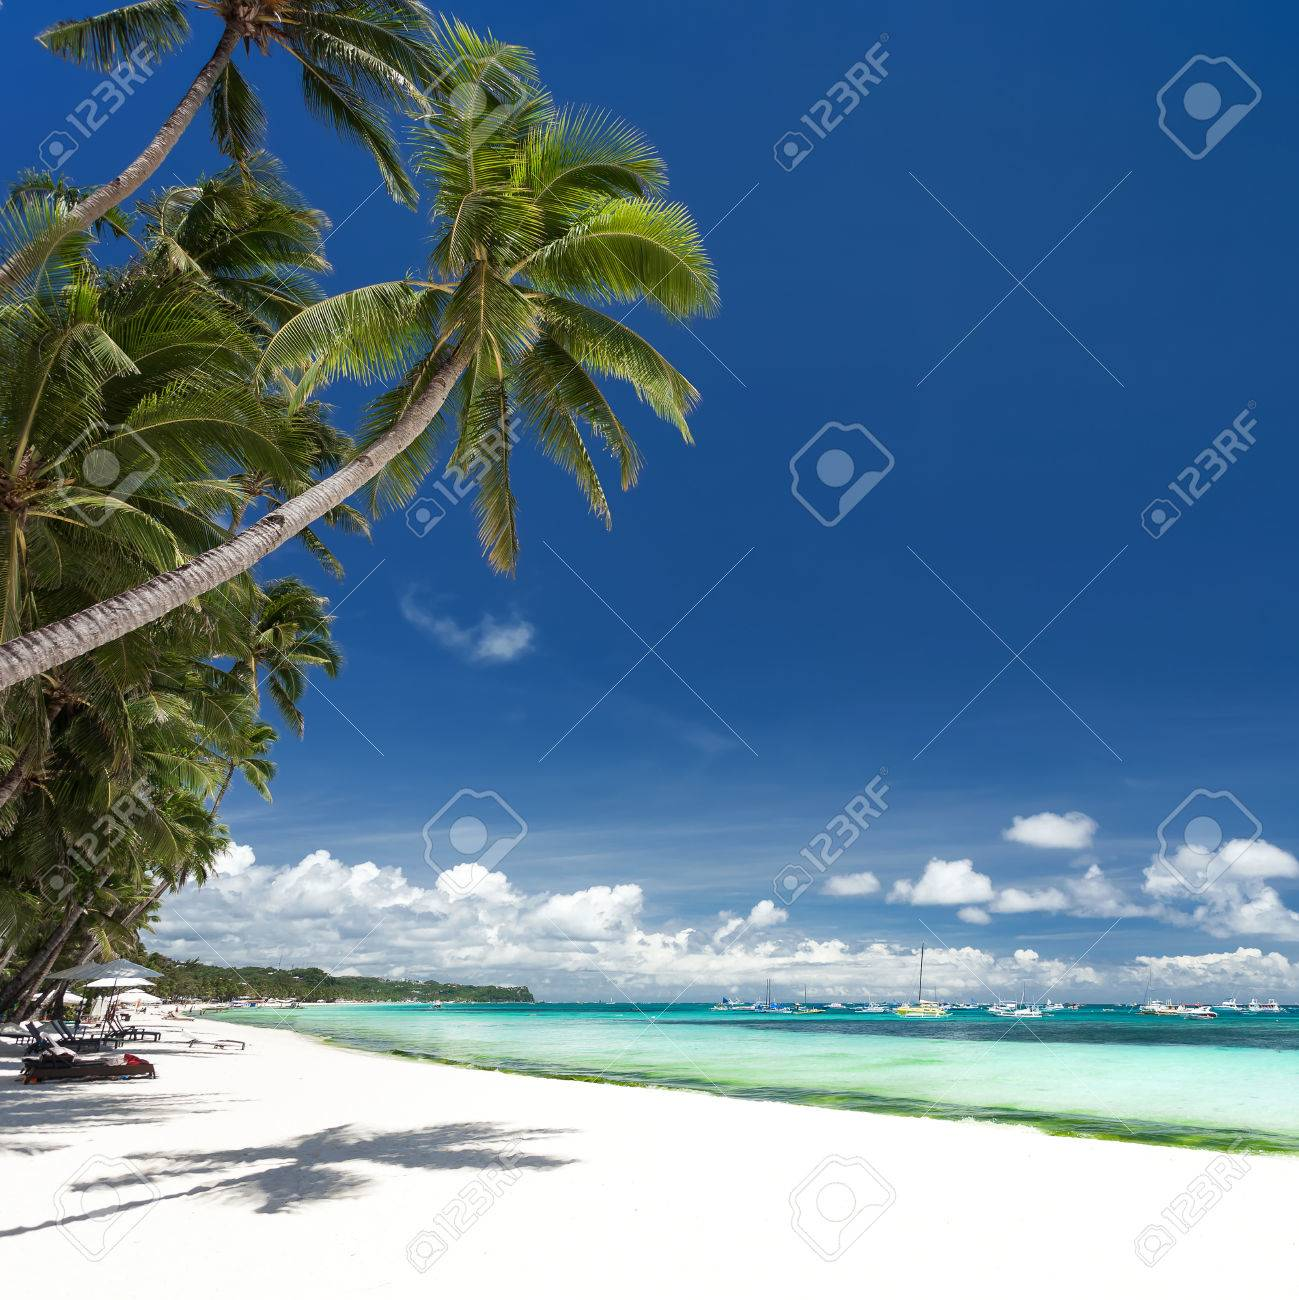 seashore with coconut palm trees. tropical destinations stock photo